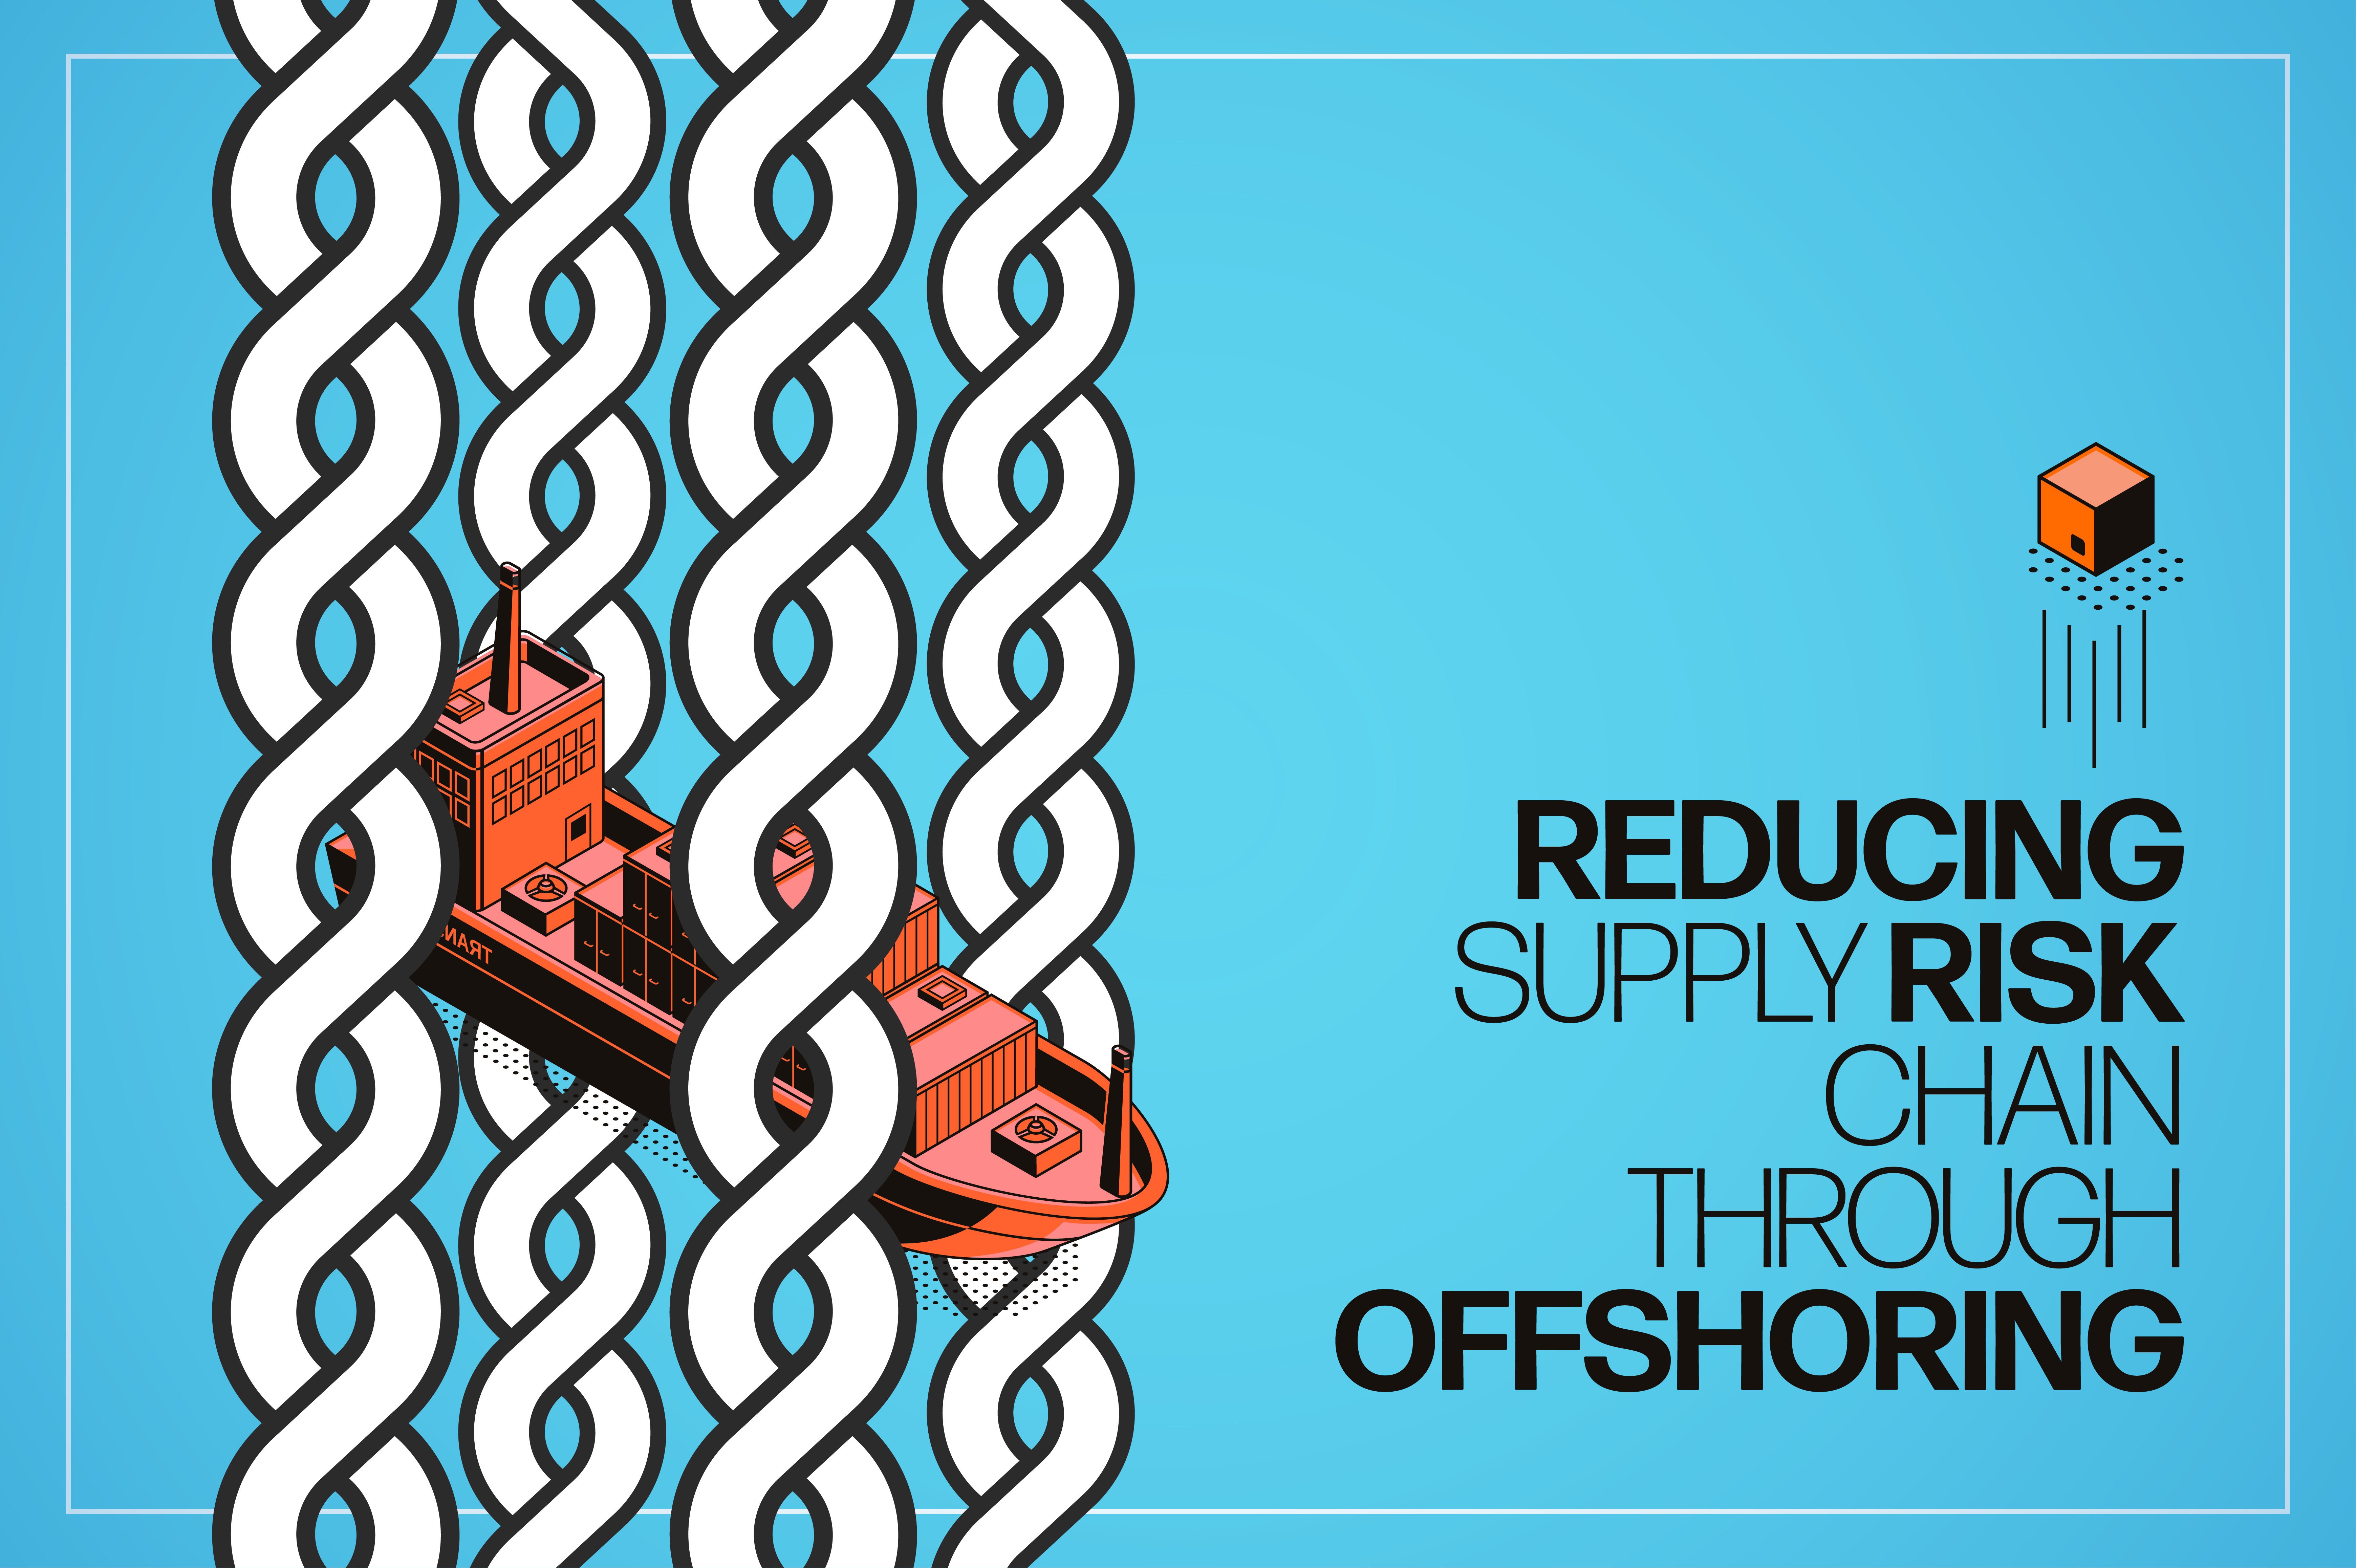 Reducing Supply Chain Risks Through Offshoring